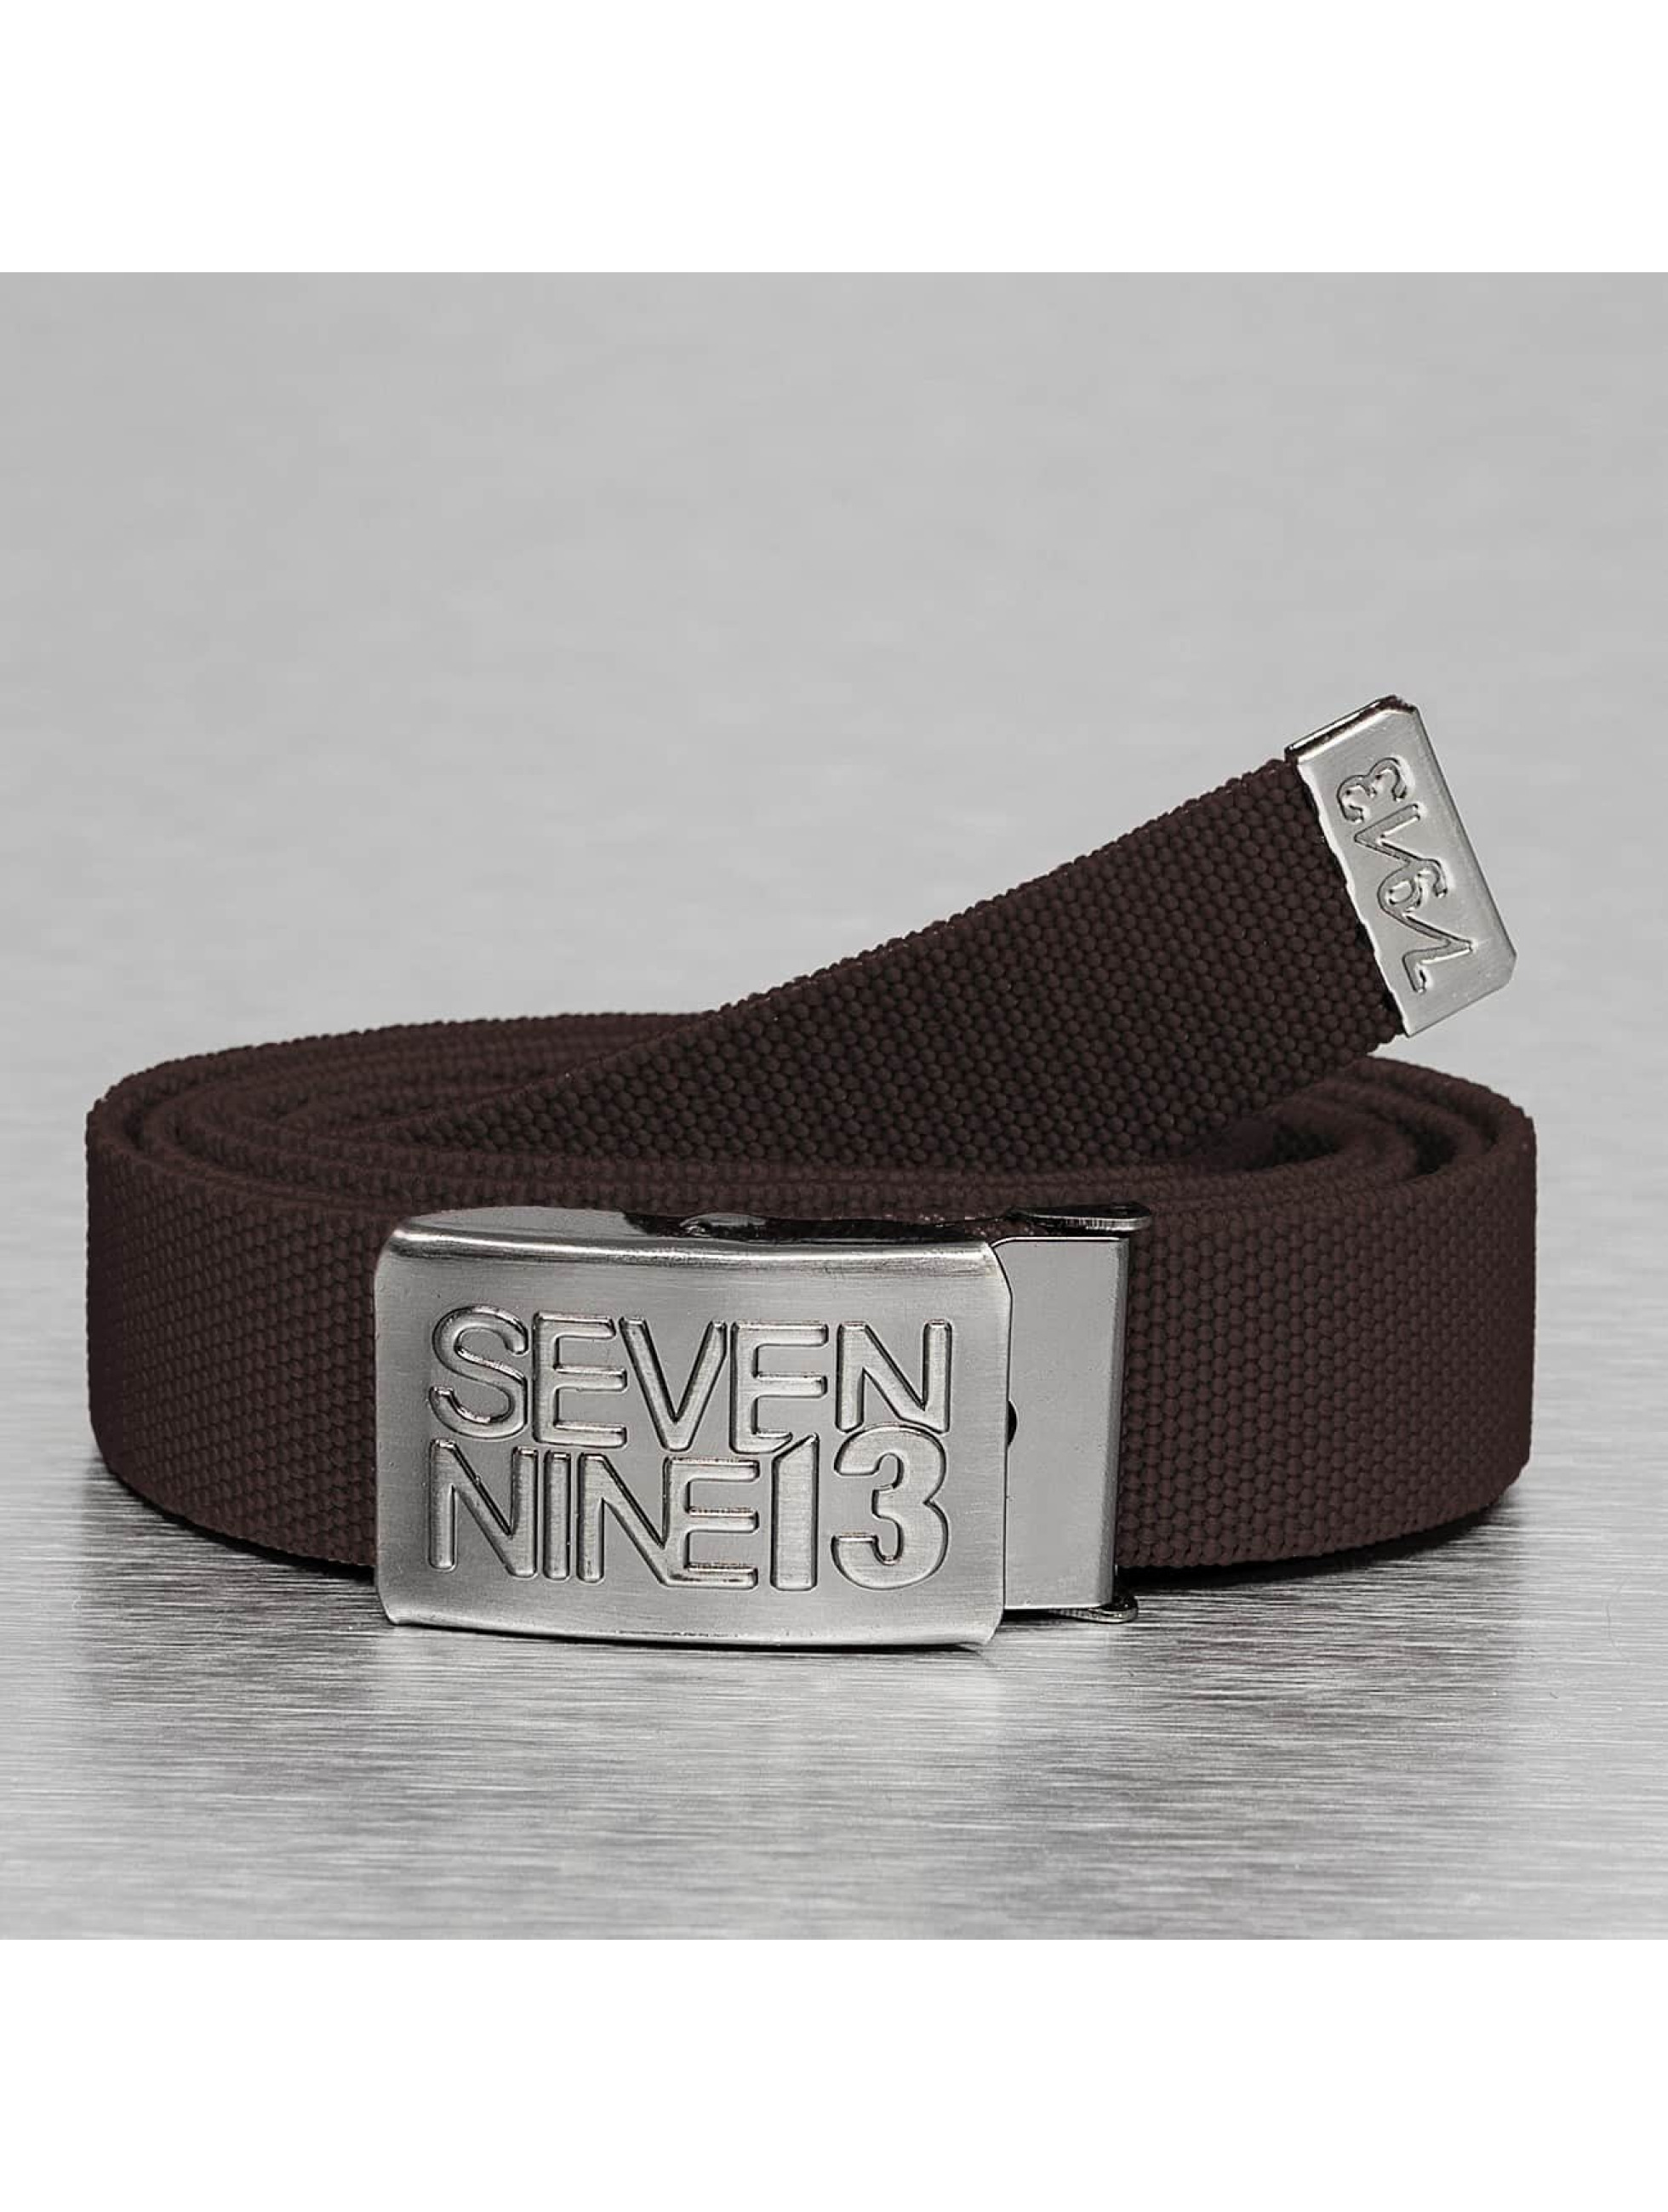 Seven Nine 13 Cintura Jaws Stretch marrone